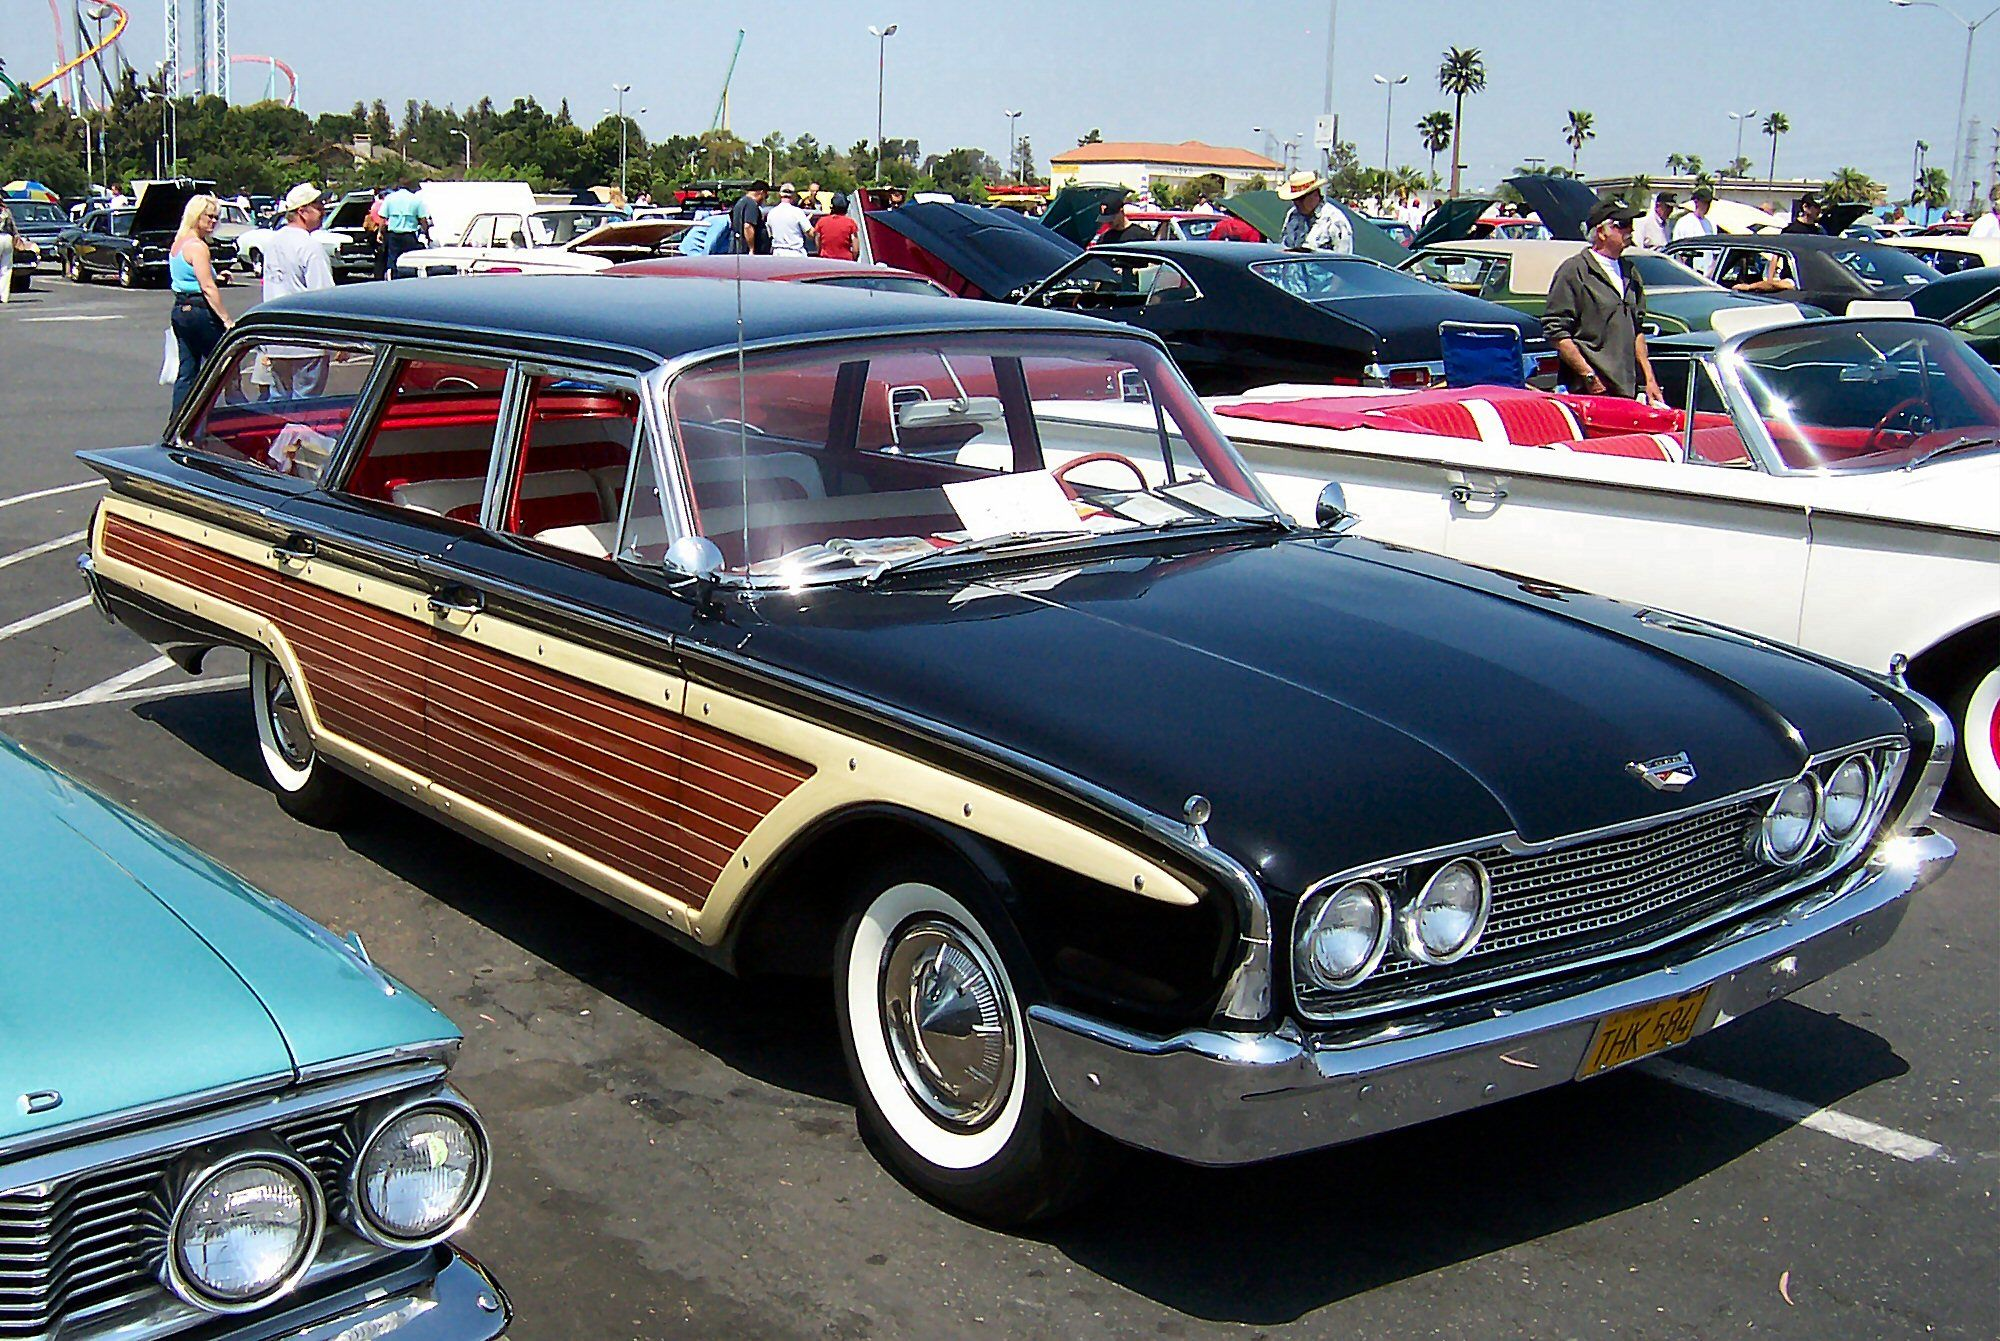 Ford country squire station wagon car of my childhood